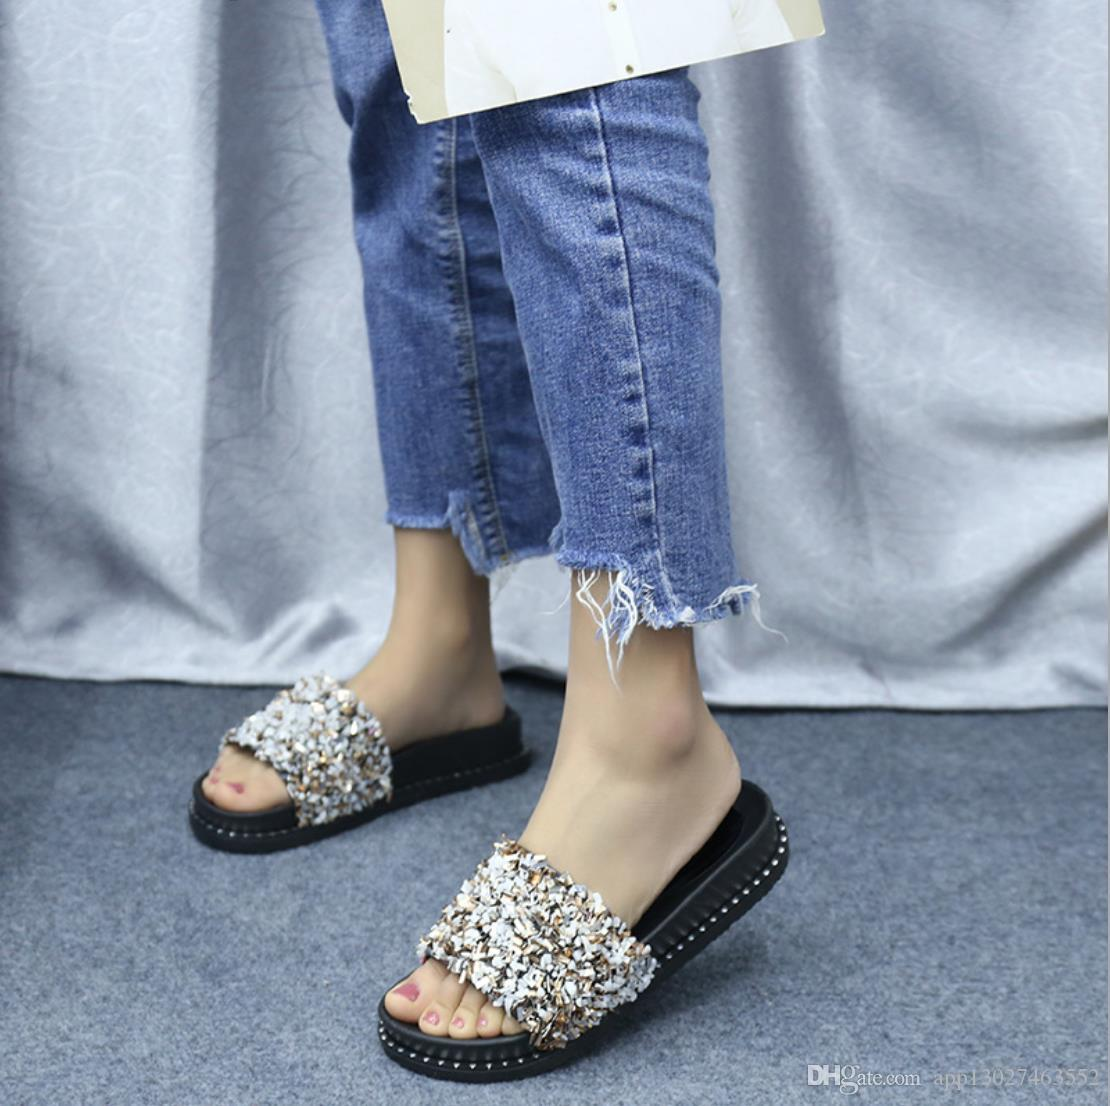 cc3caae89c56 Slippers Female Summer Wear 2019 New Korean Fashion One Word Drag Outdoor Beach  Casual Sandals And Slippers Womens Loafers Fashion Shoes From  App13027463552 ...